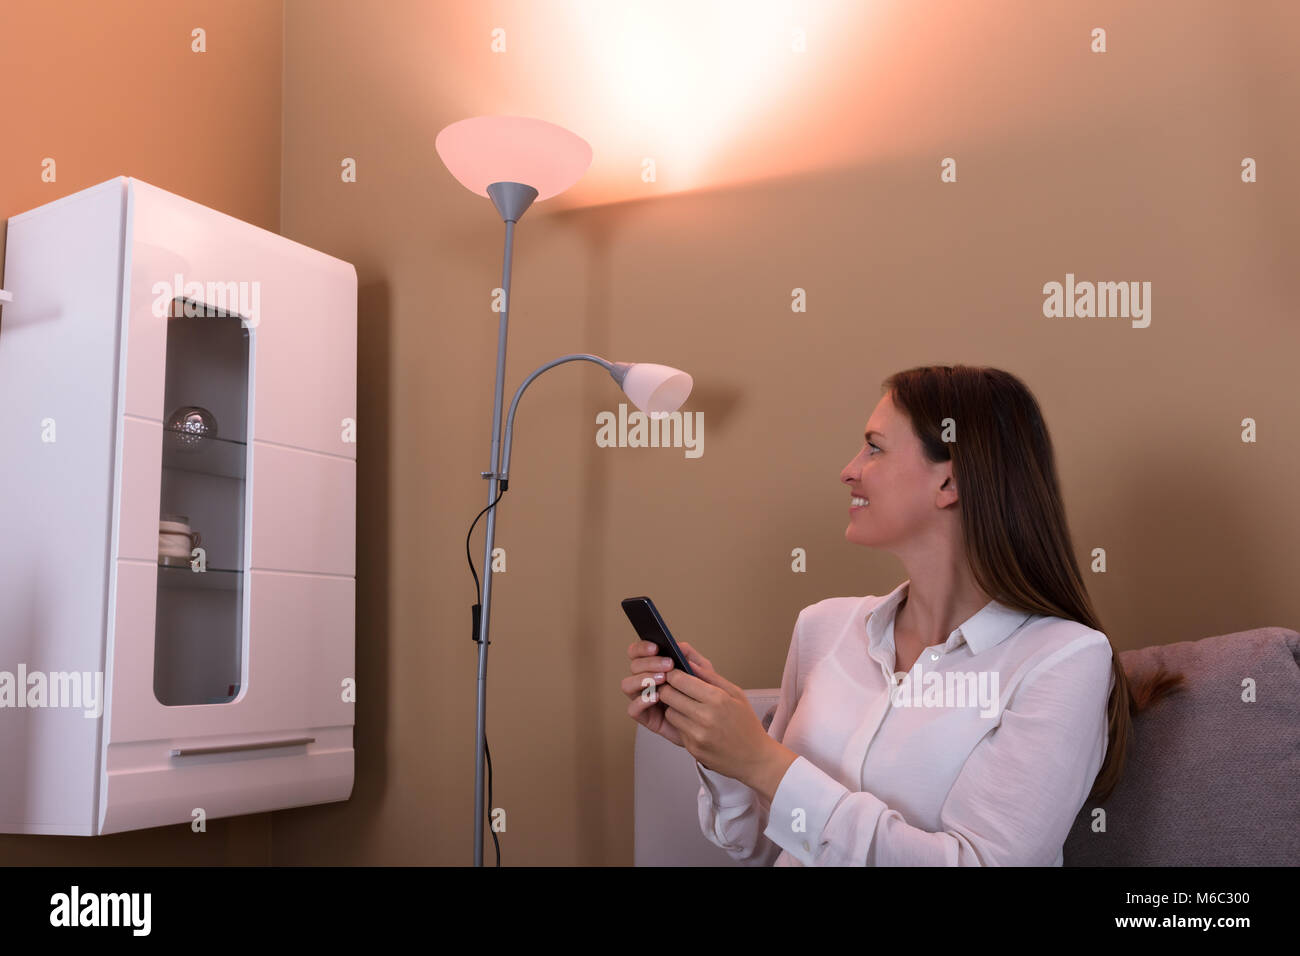 Happy Smiling Woman Controlling Electric Lamp With Mobile Phone At Home - Stock Image